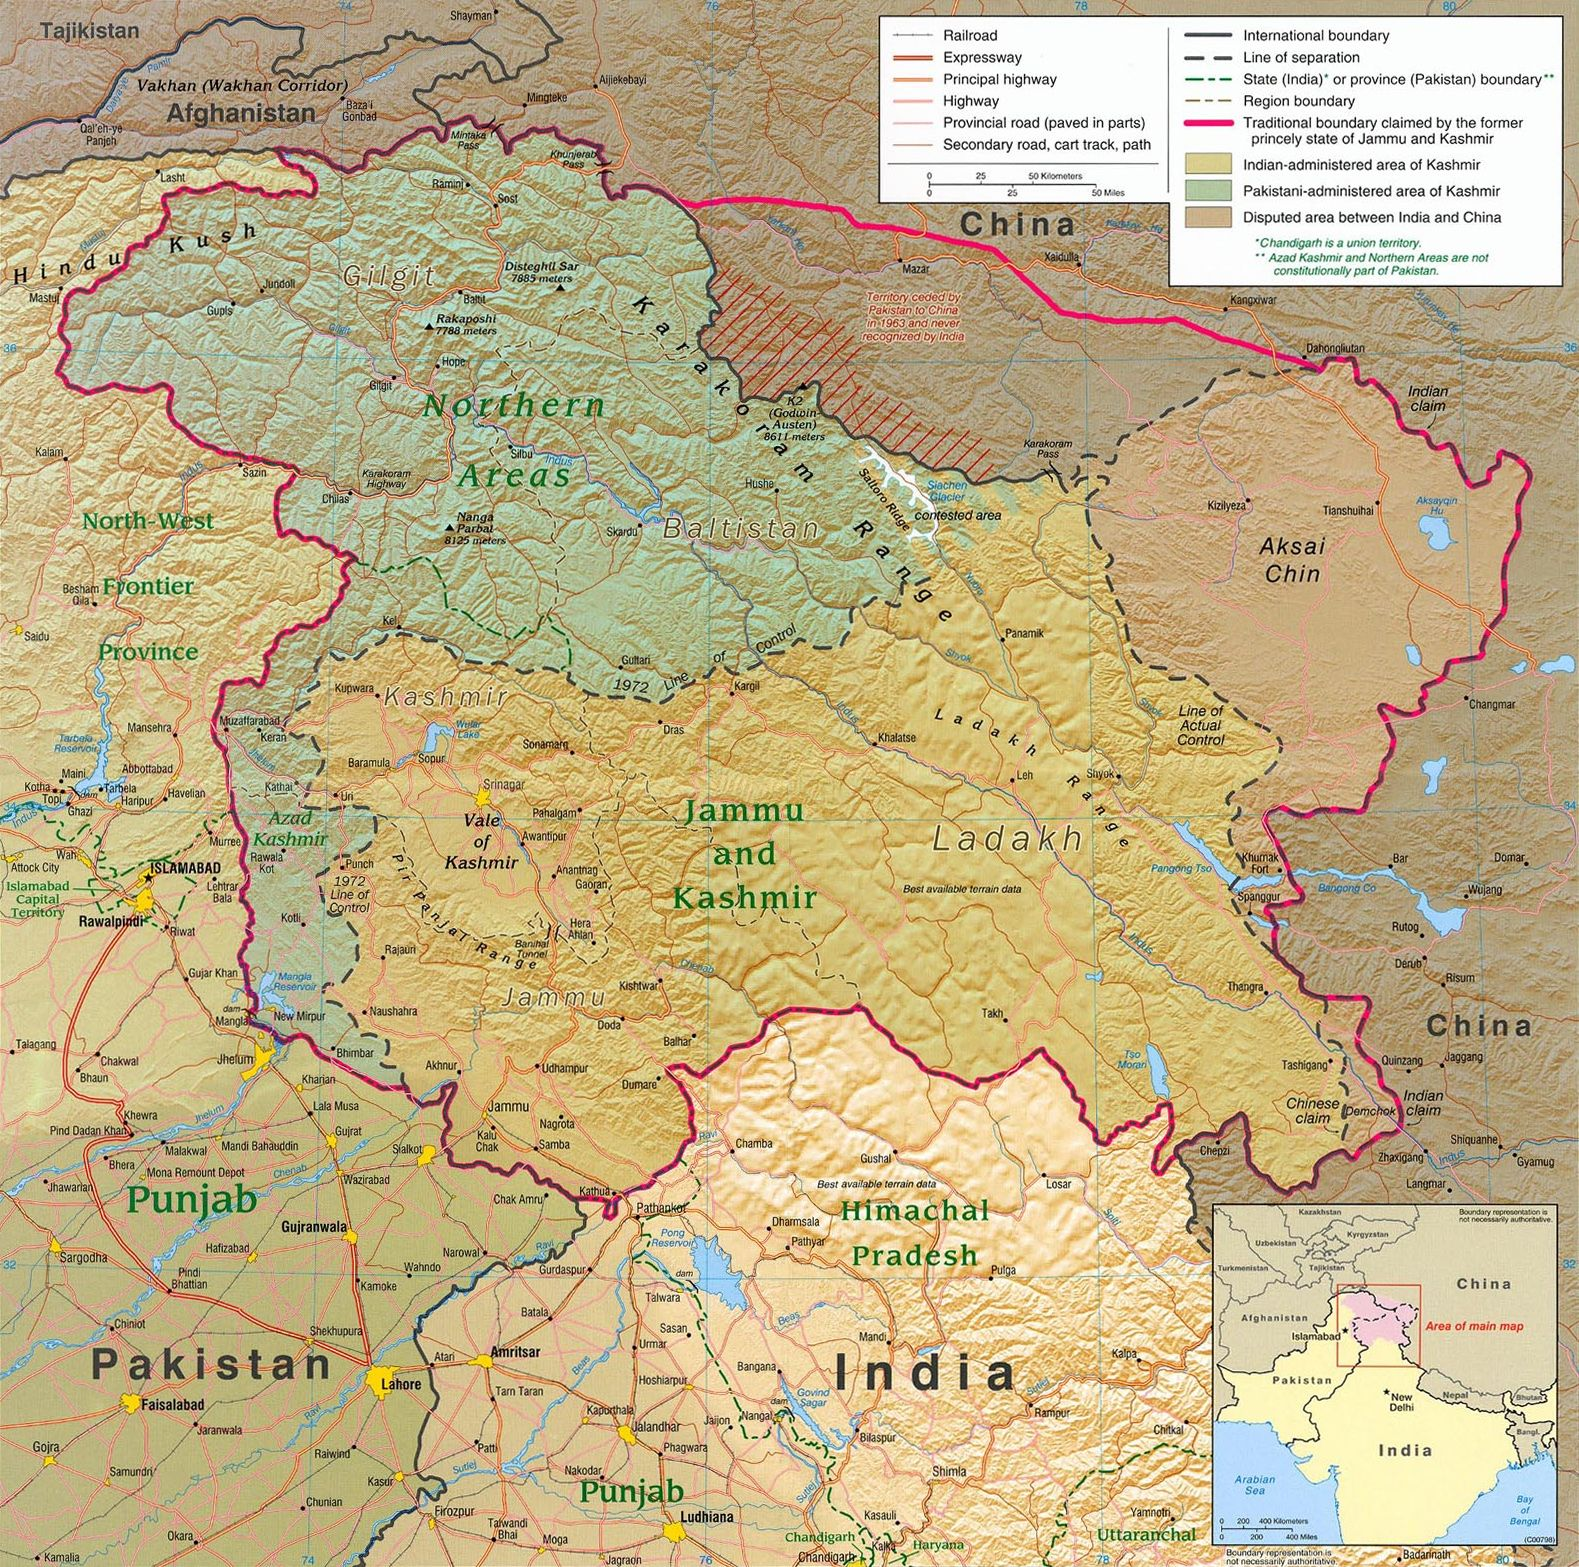 Kashmir Region 2004 Maps And Charts Cartine Geografiche Map